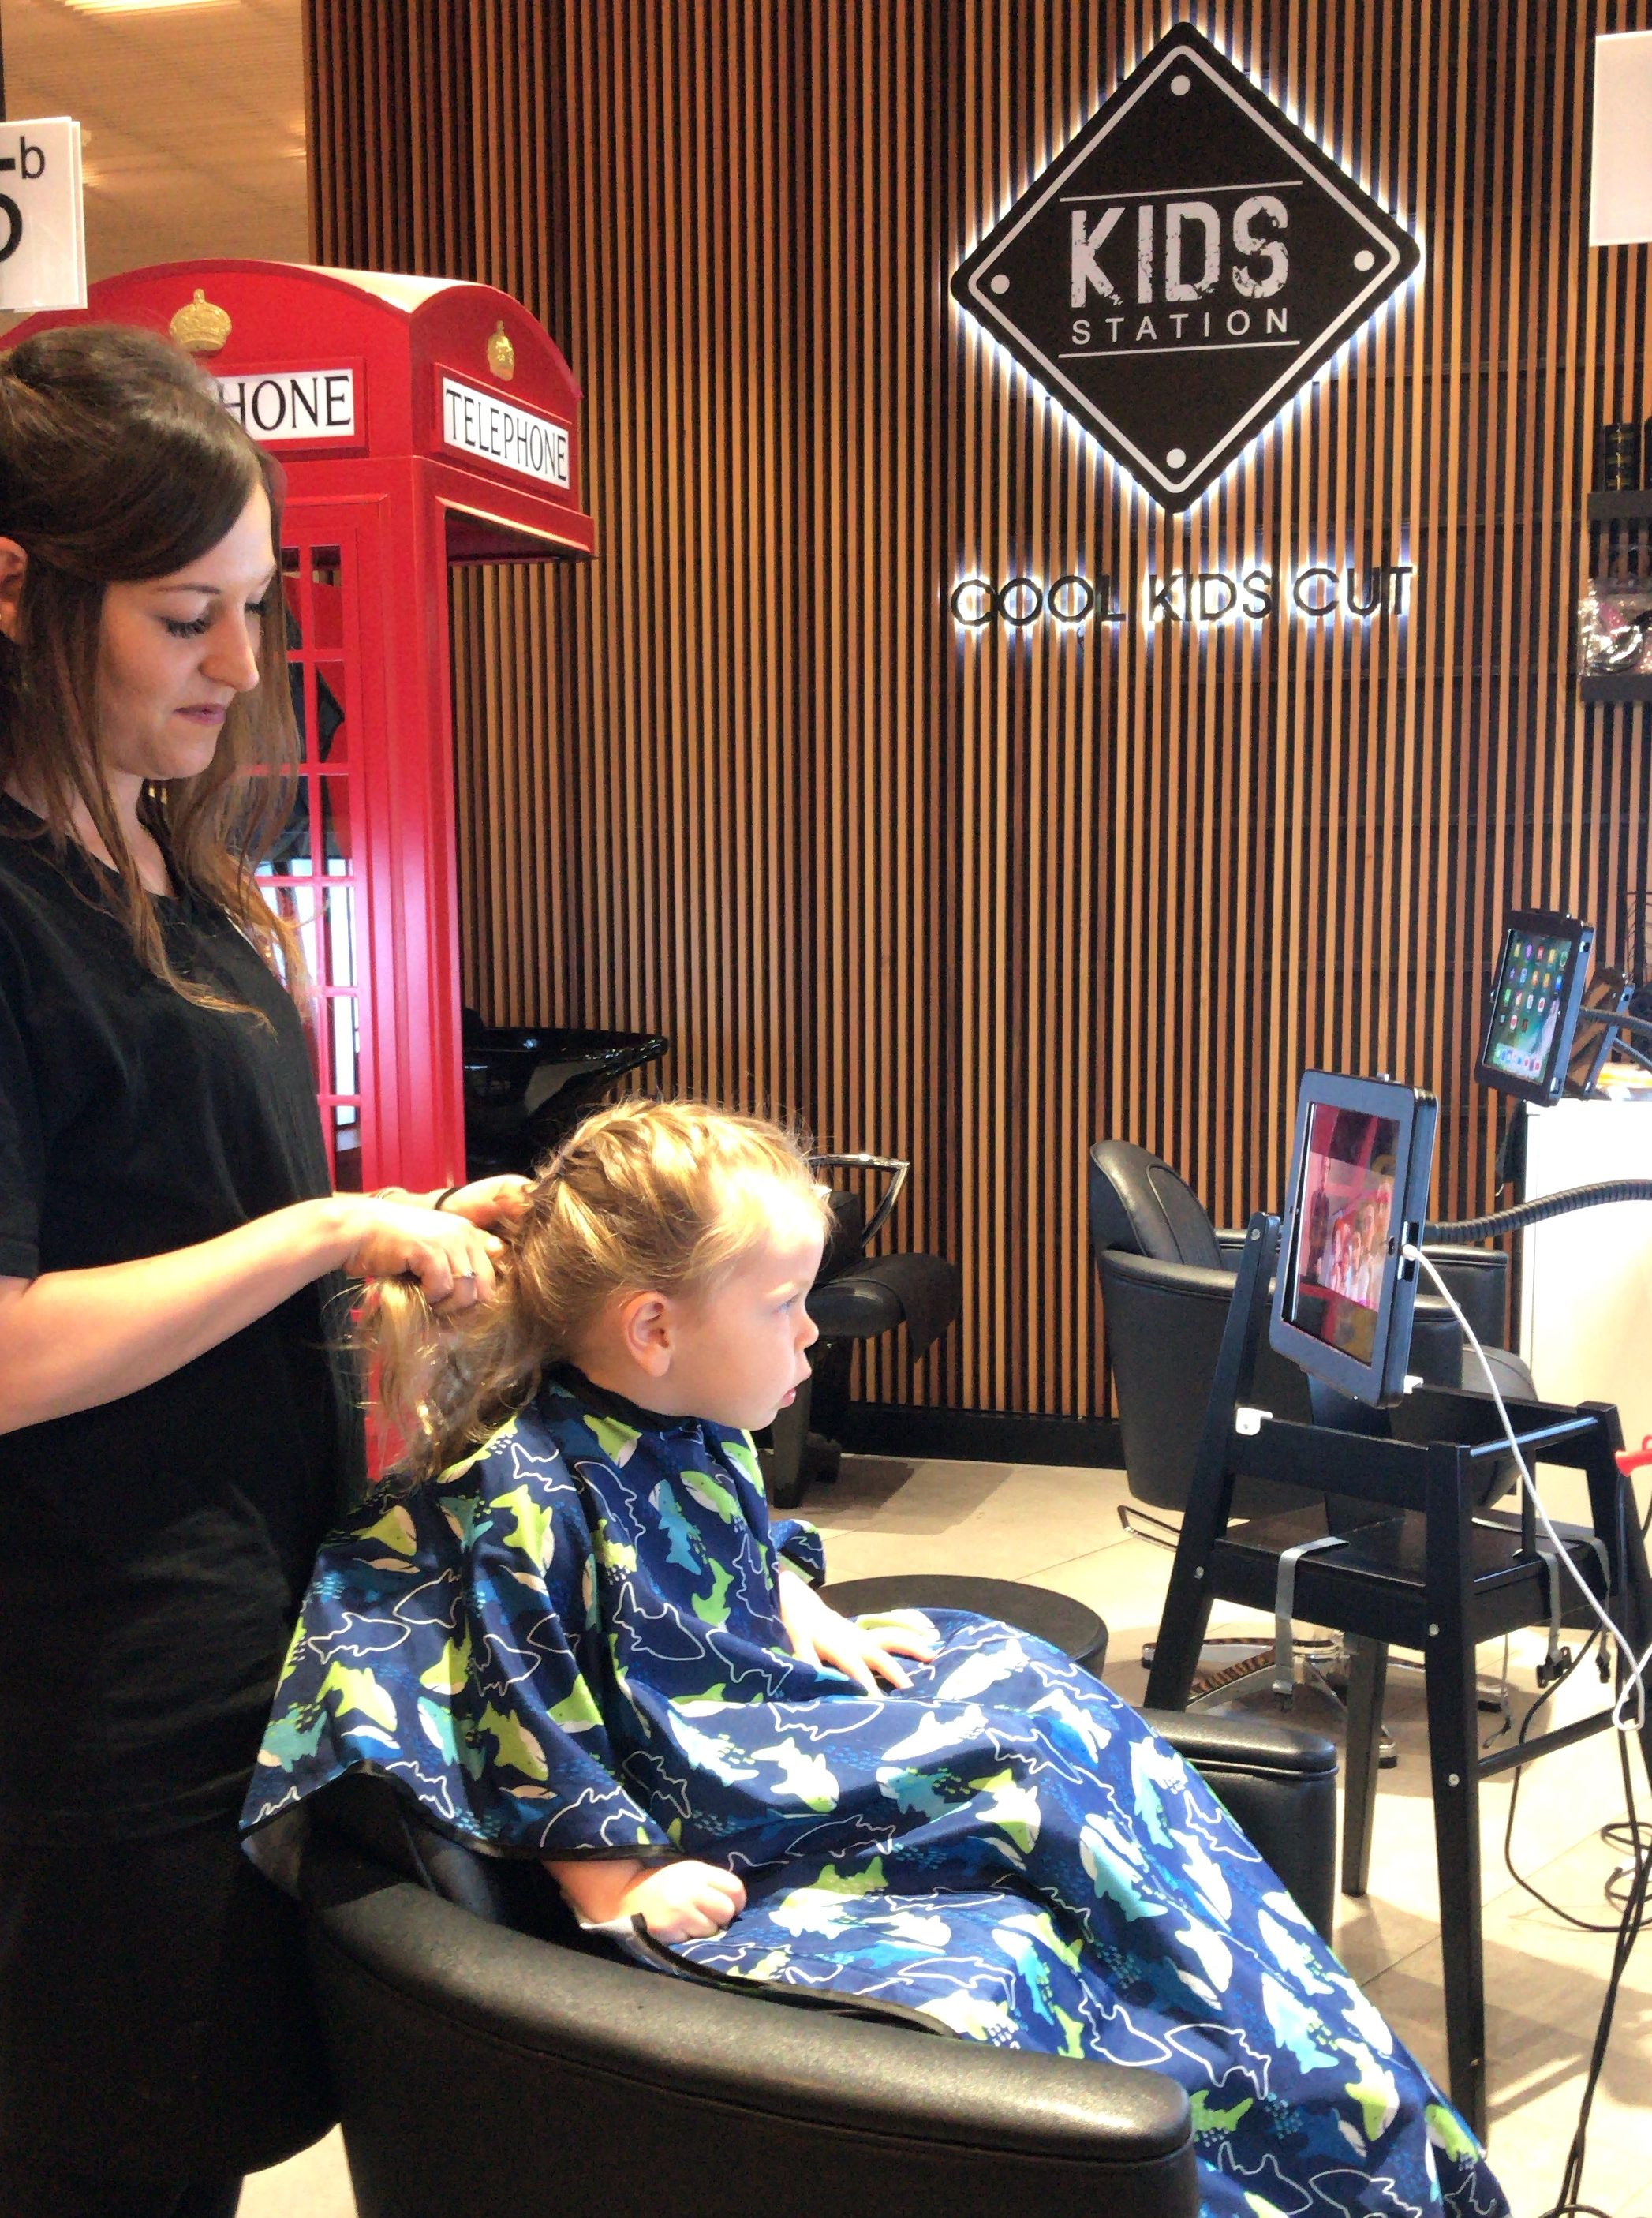 Kids Haircuts Made Fun At Cool Kids Cuts Top Ryde Shopping Centre